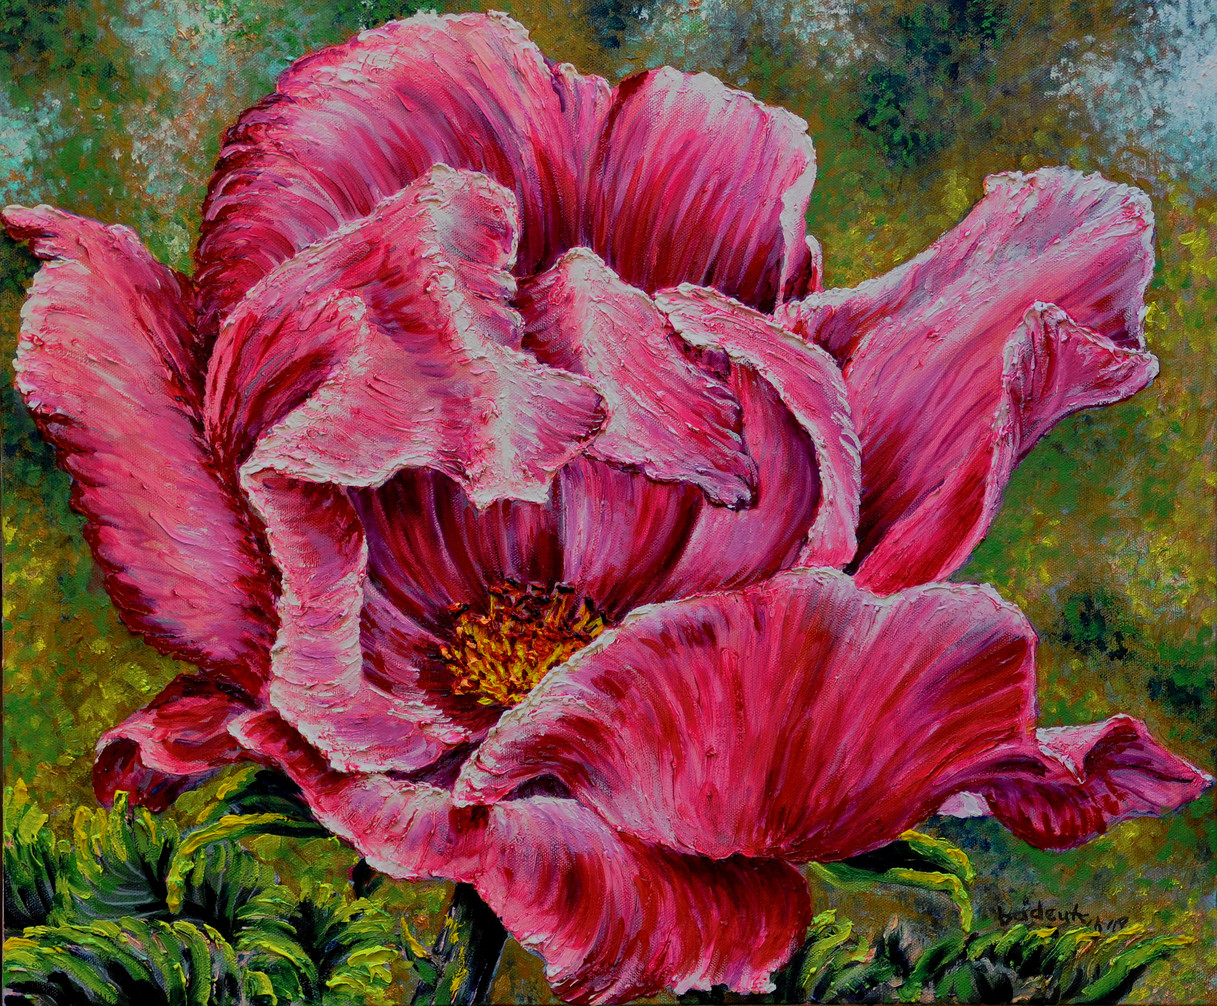 Rose 2019 $450, 16 x 20 Oil on Canvas